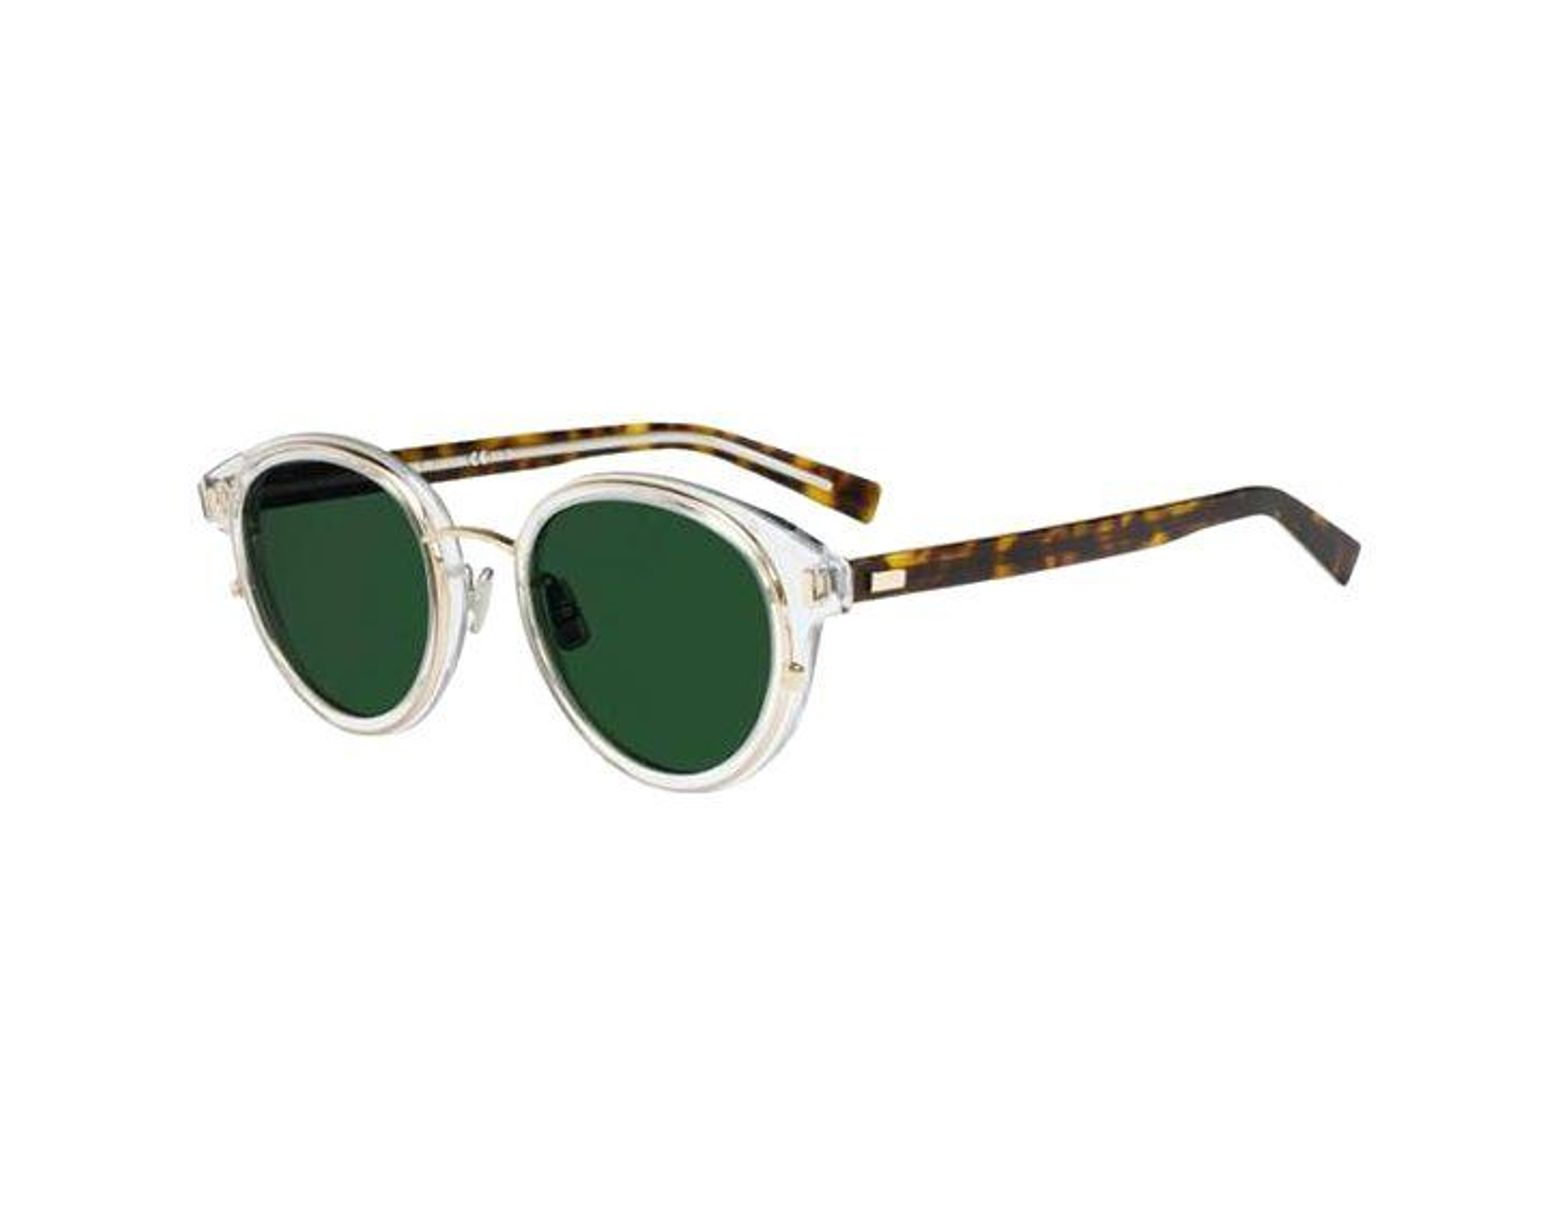 339bf97807ef Dior Blacktie2.0s K Oval Sunglasses in Green for Men - Lyst